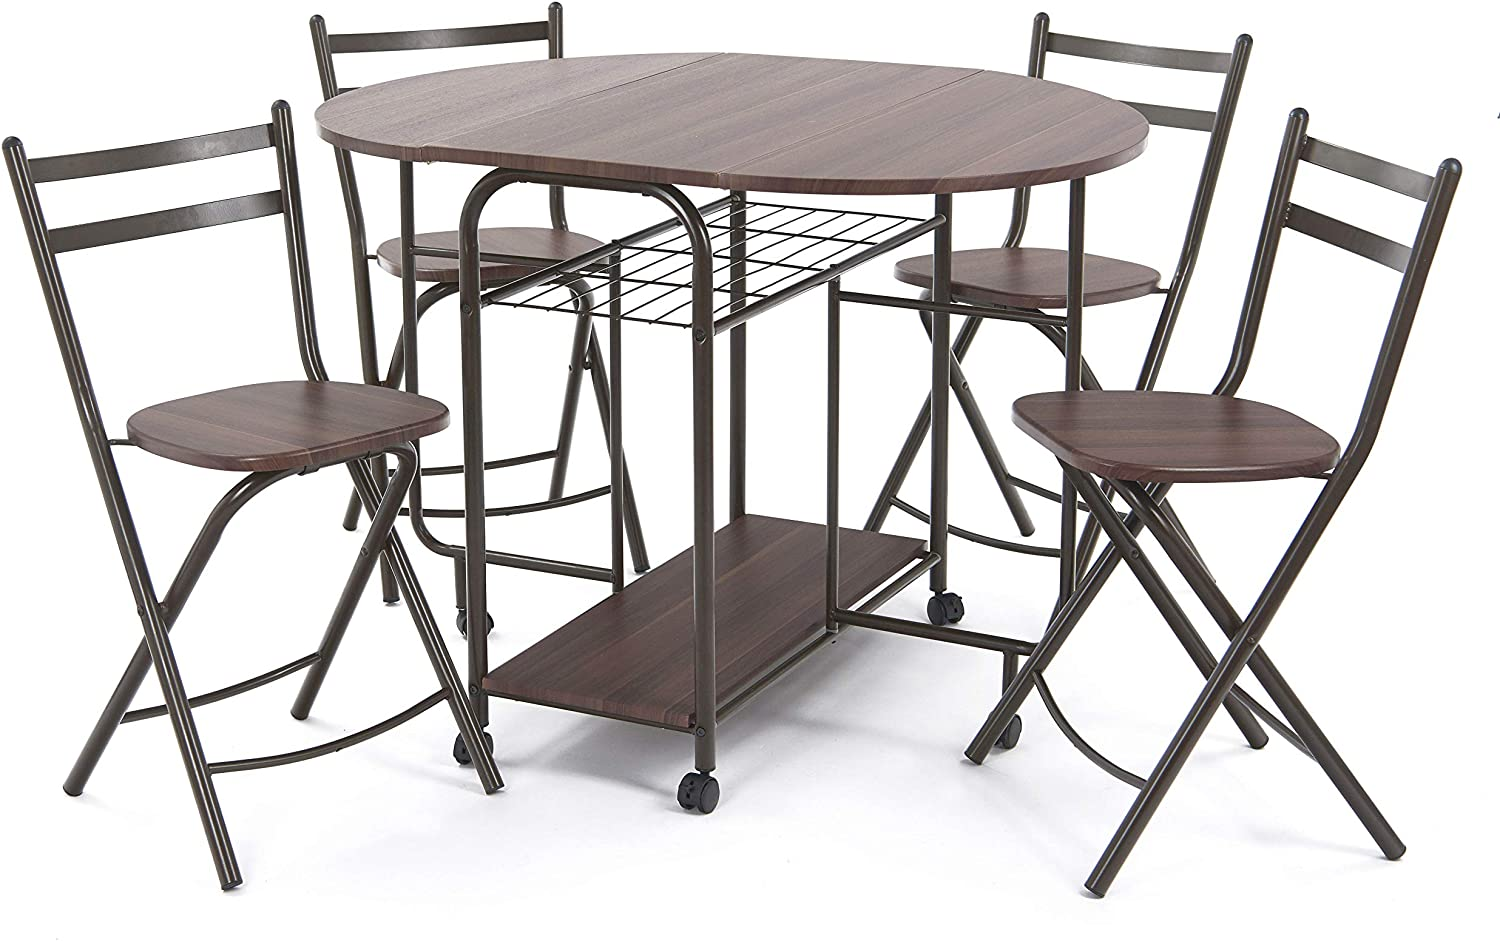 Stowaway Dining Table and Chairs Dining Table Set with Wood Grain ...